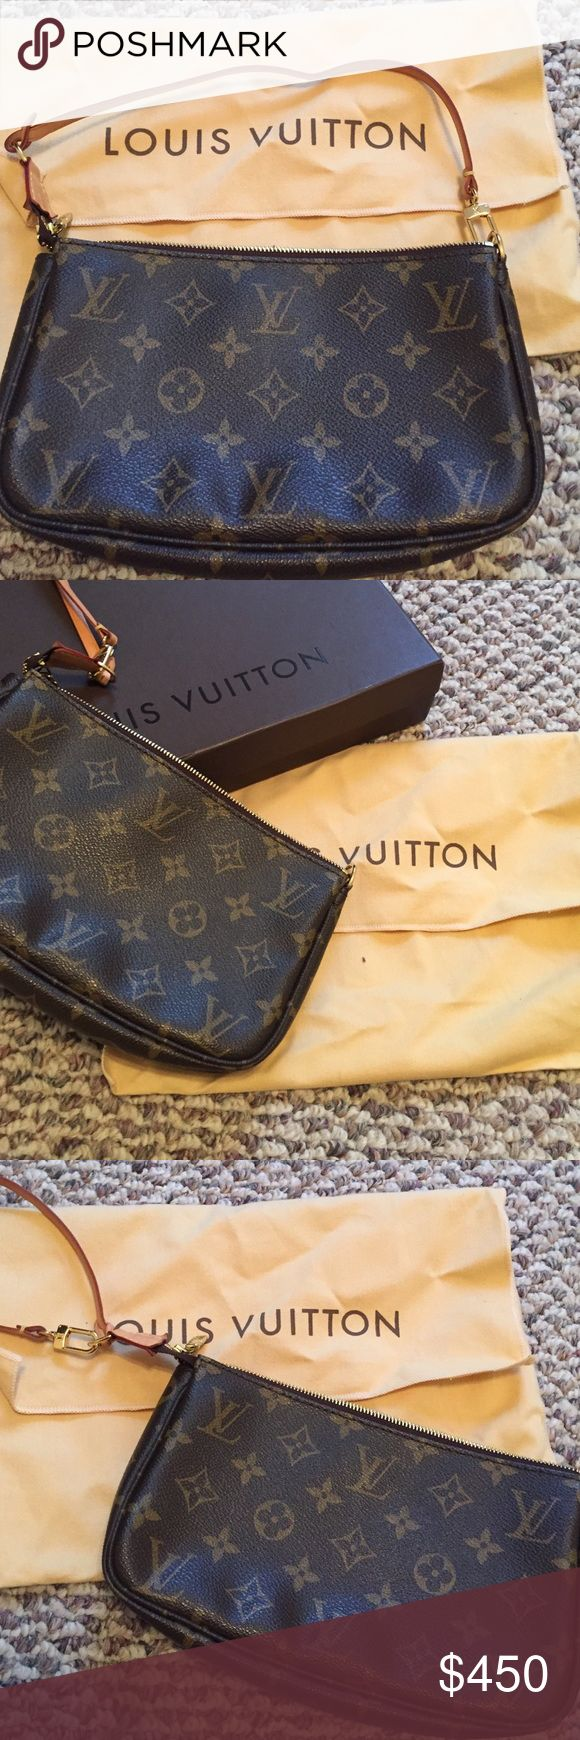 Like New Louis Vuitton Small Clutch Purse!! Like New small Louis Vuitton bag- only used a couple of times! Bought at the LV store in Las Vegas. Louis Vuitton Bags Clutches & Wristlets